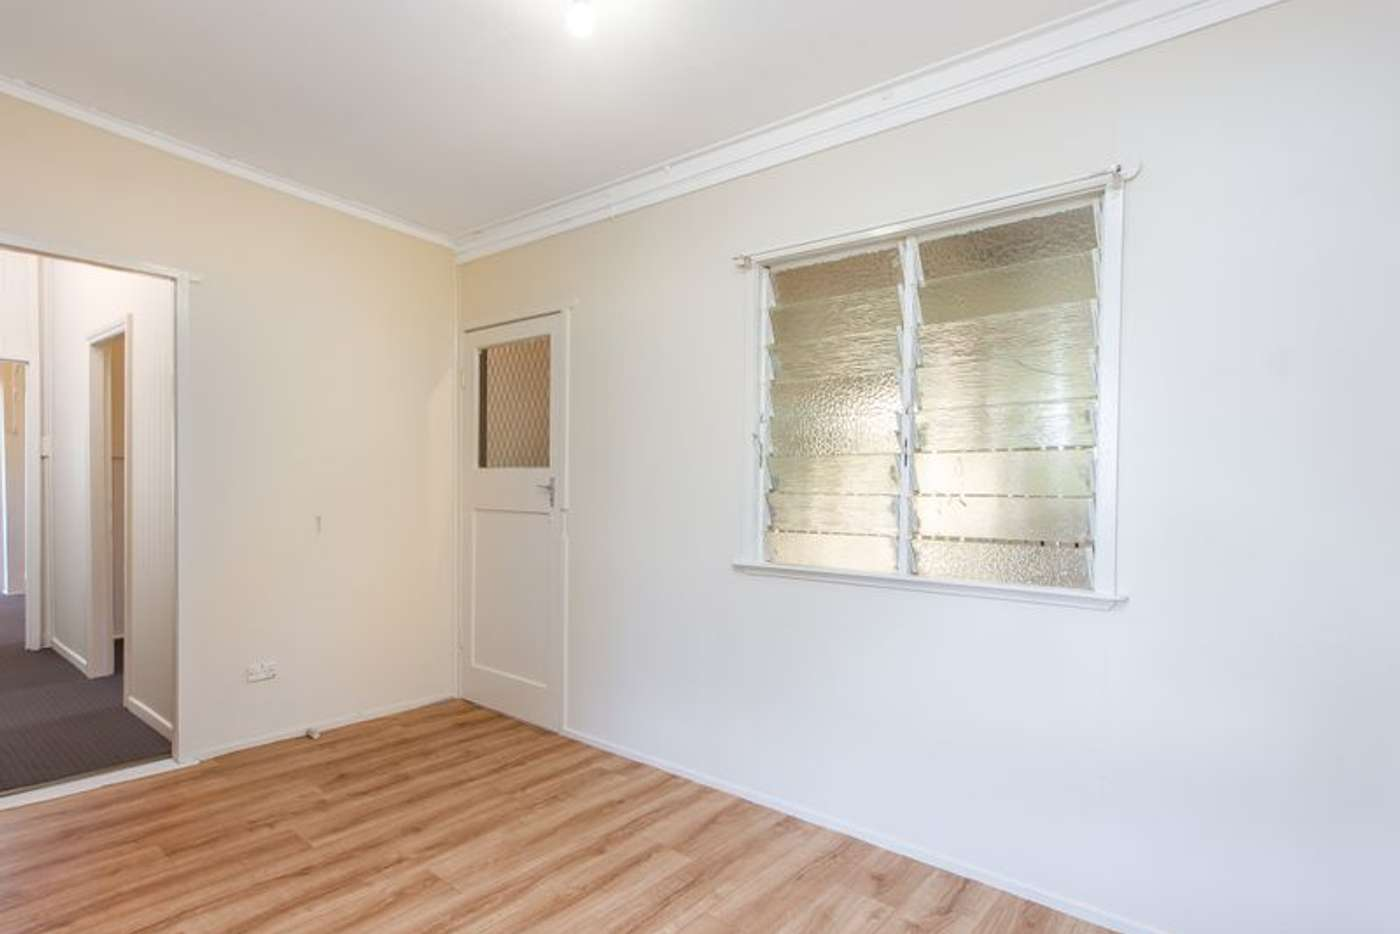 Seventh view of Homely house listing, 37 Cole Street, Silkstone QLD 4304